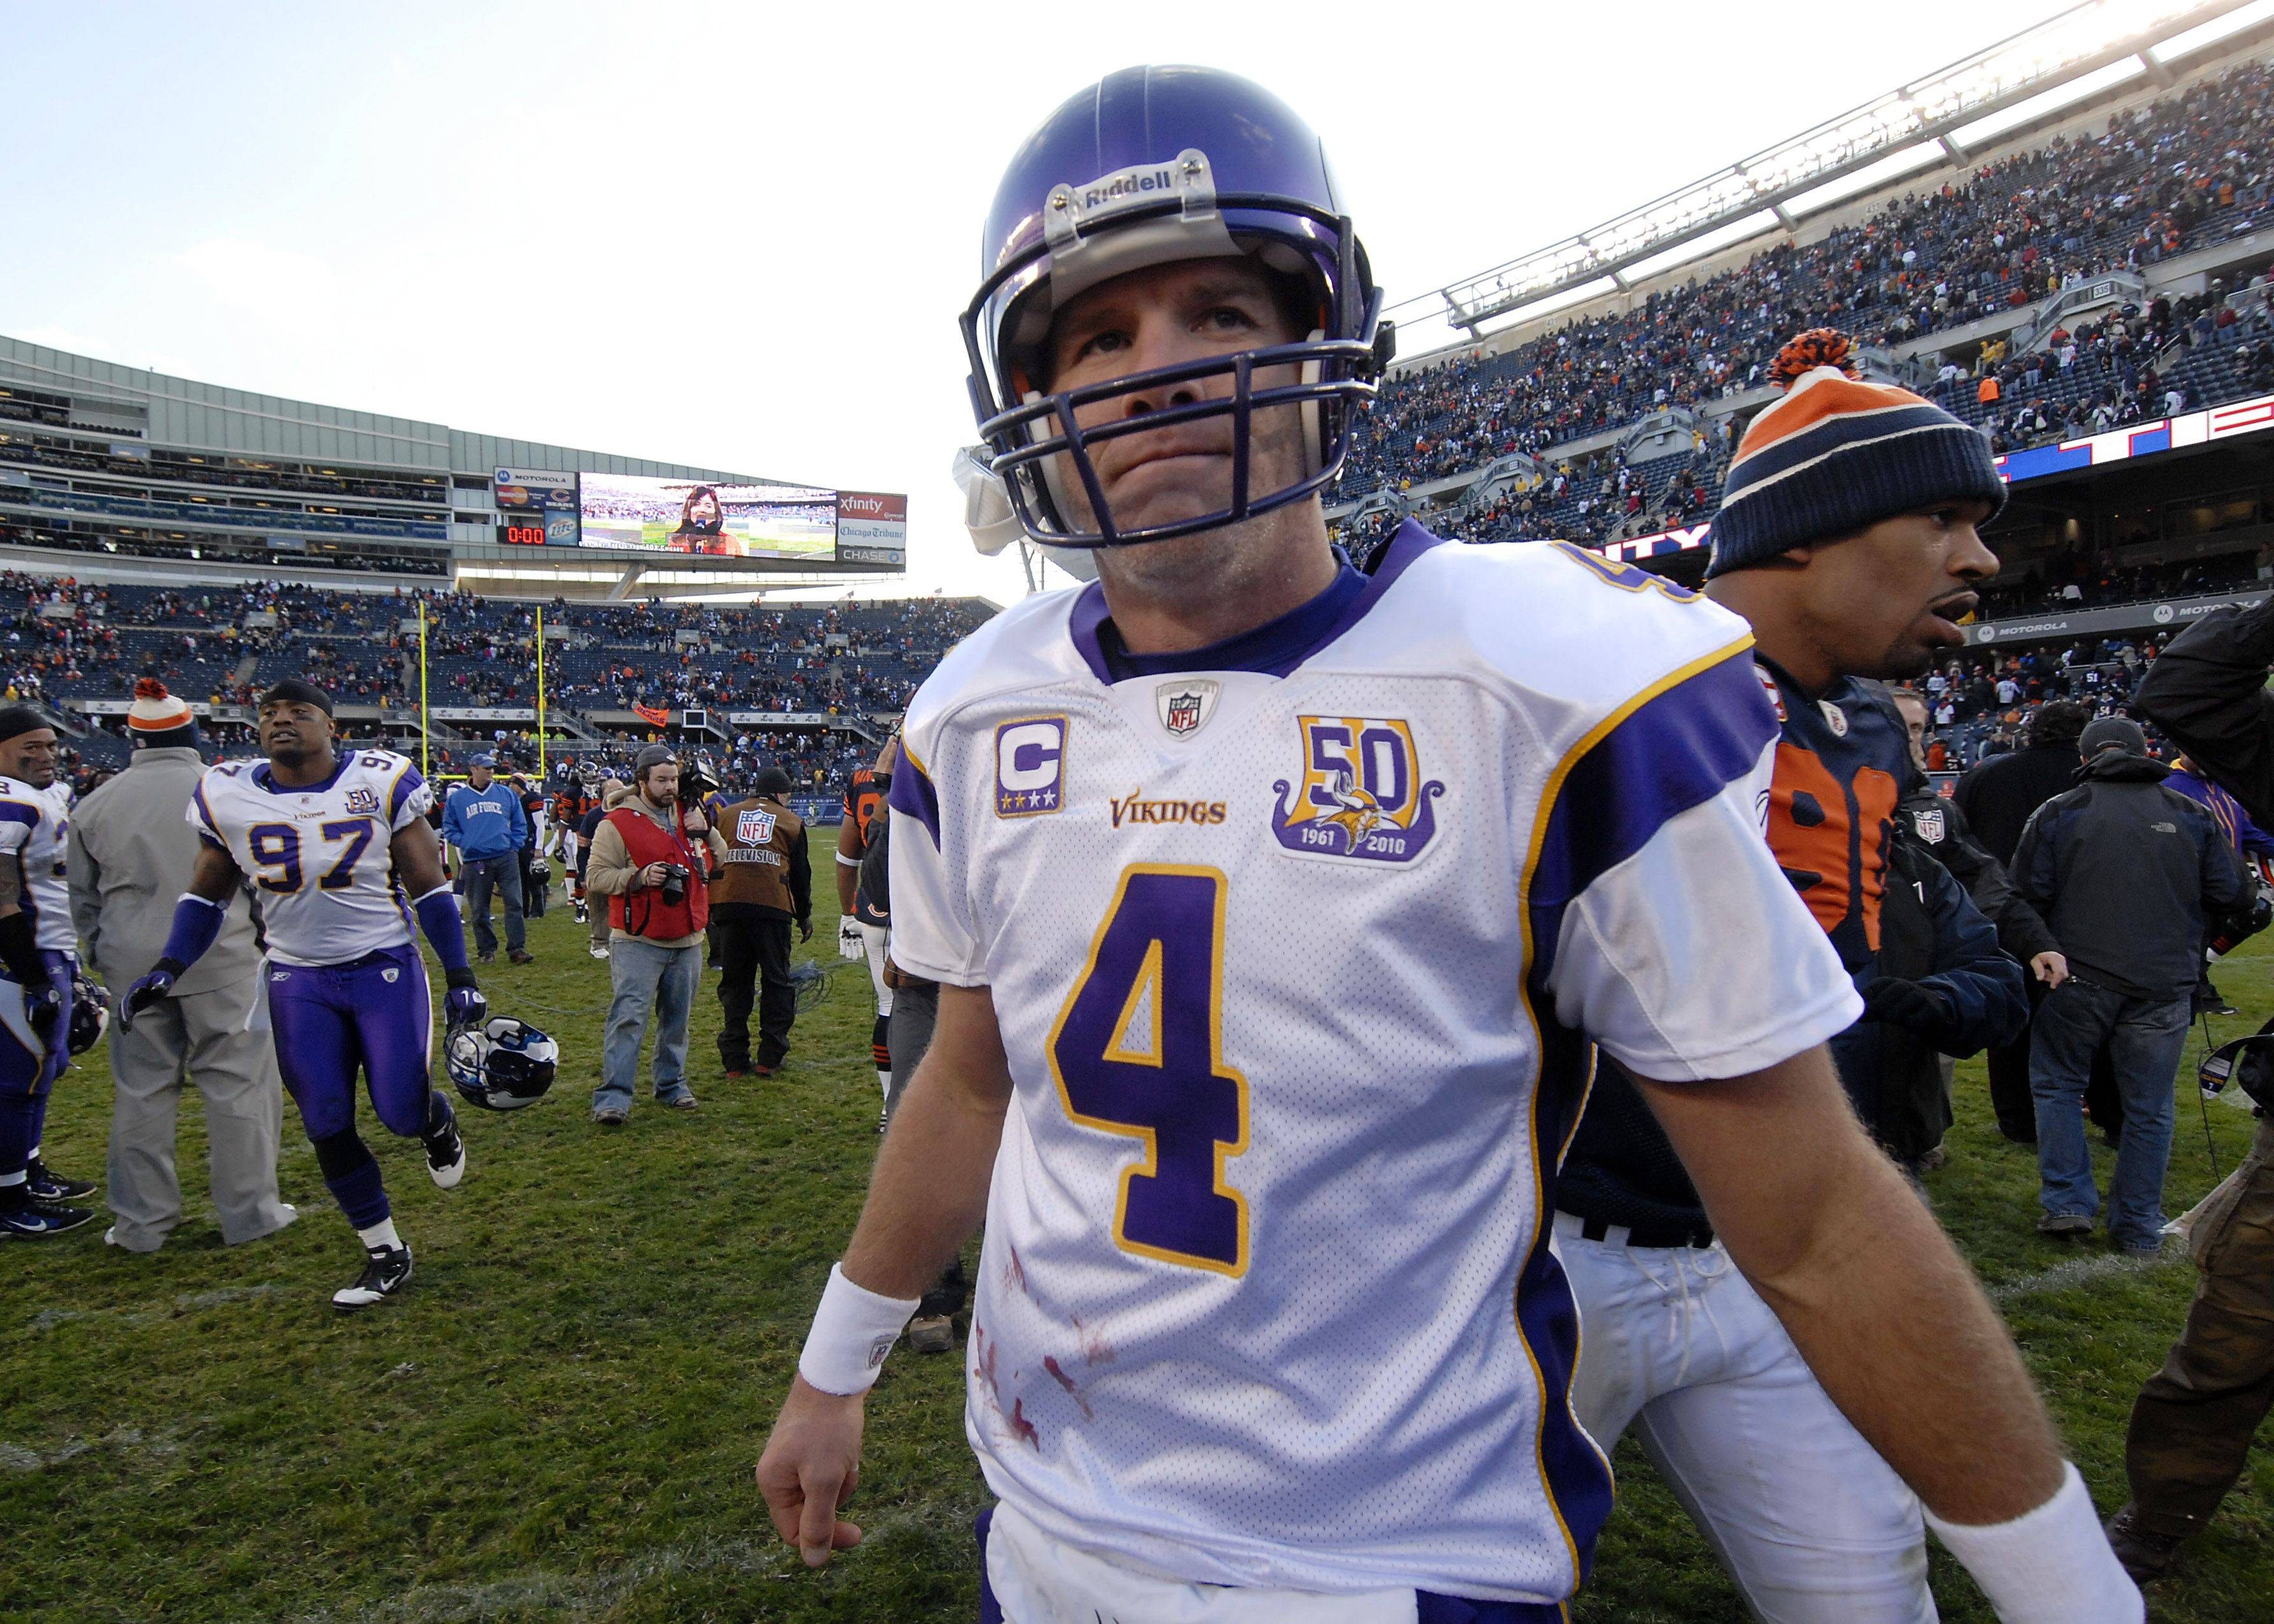 Minnesota's quarterback Brett Favre walks off the field after losing to the Bears, perhaps for the last time as a player.